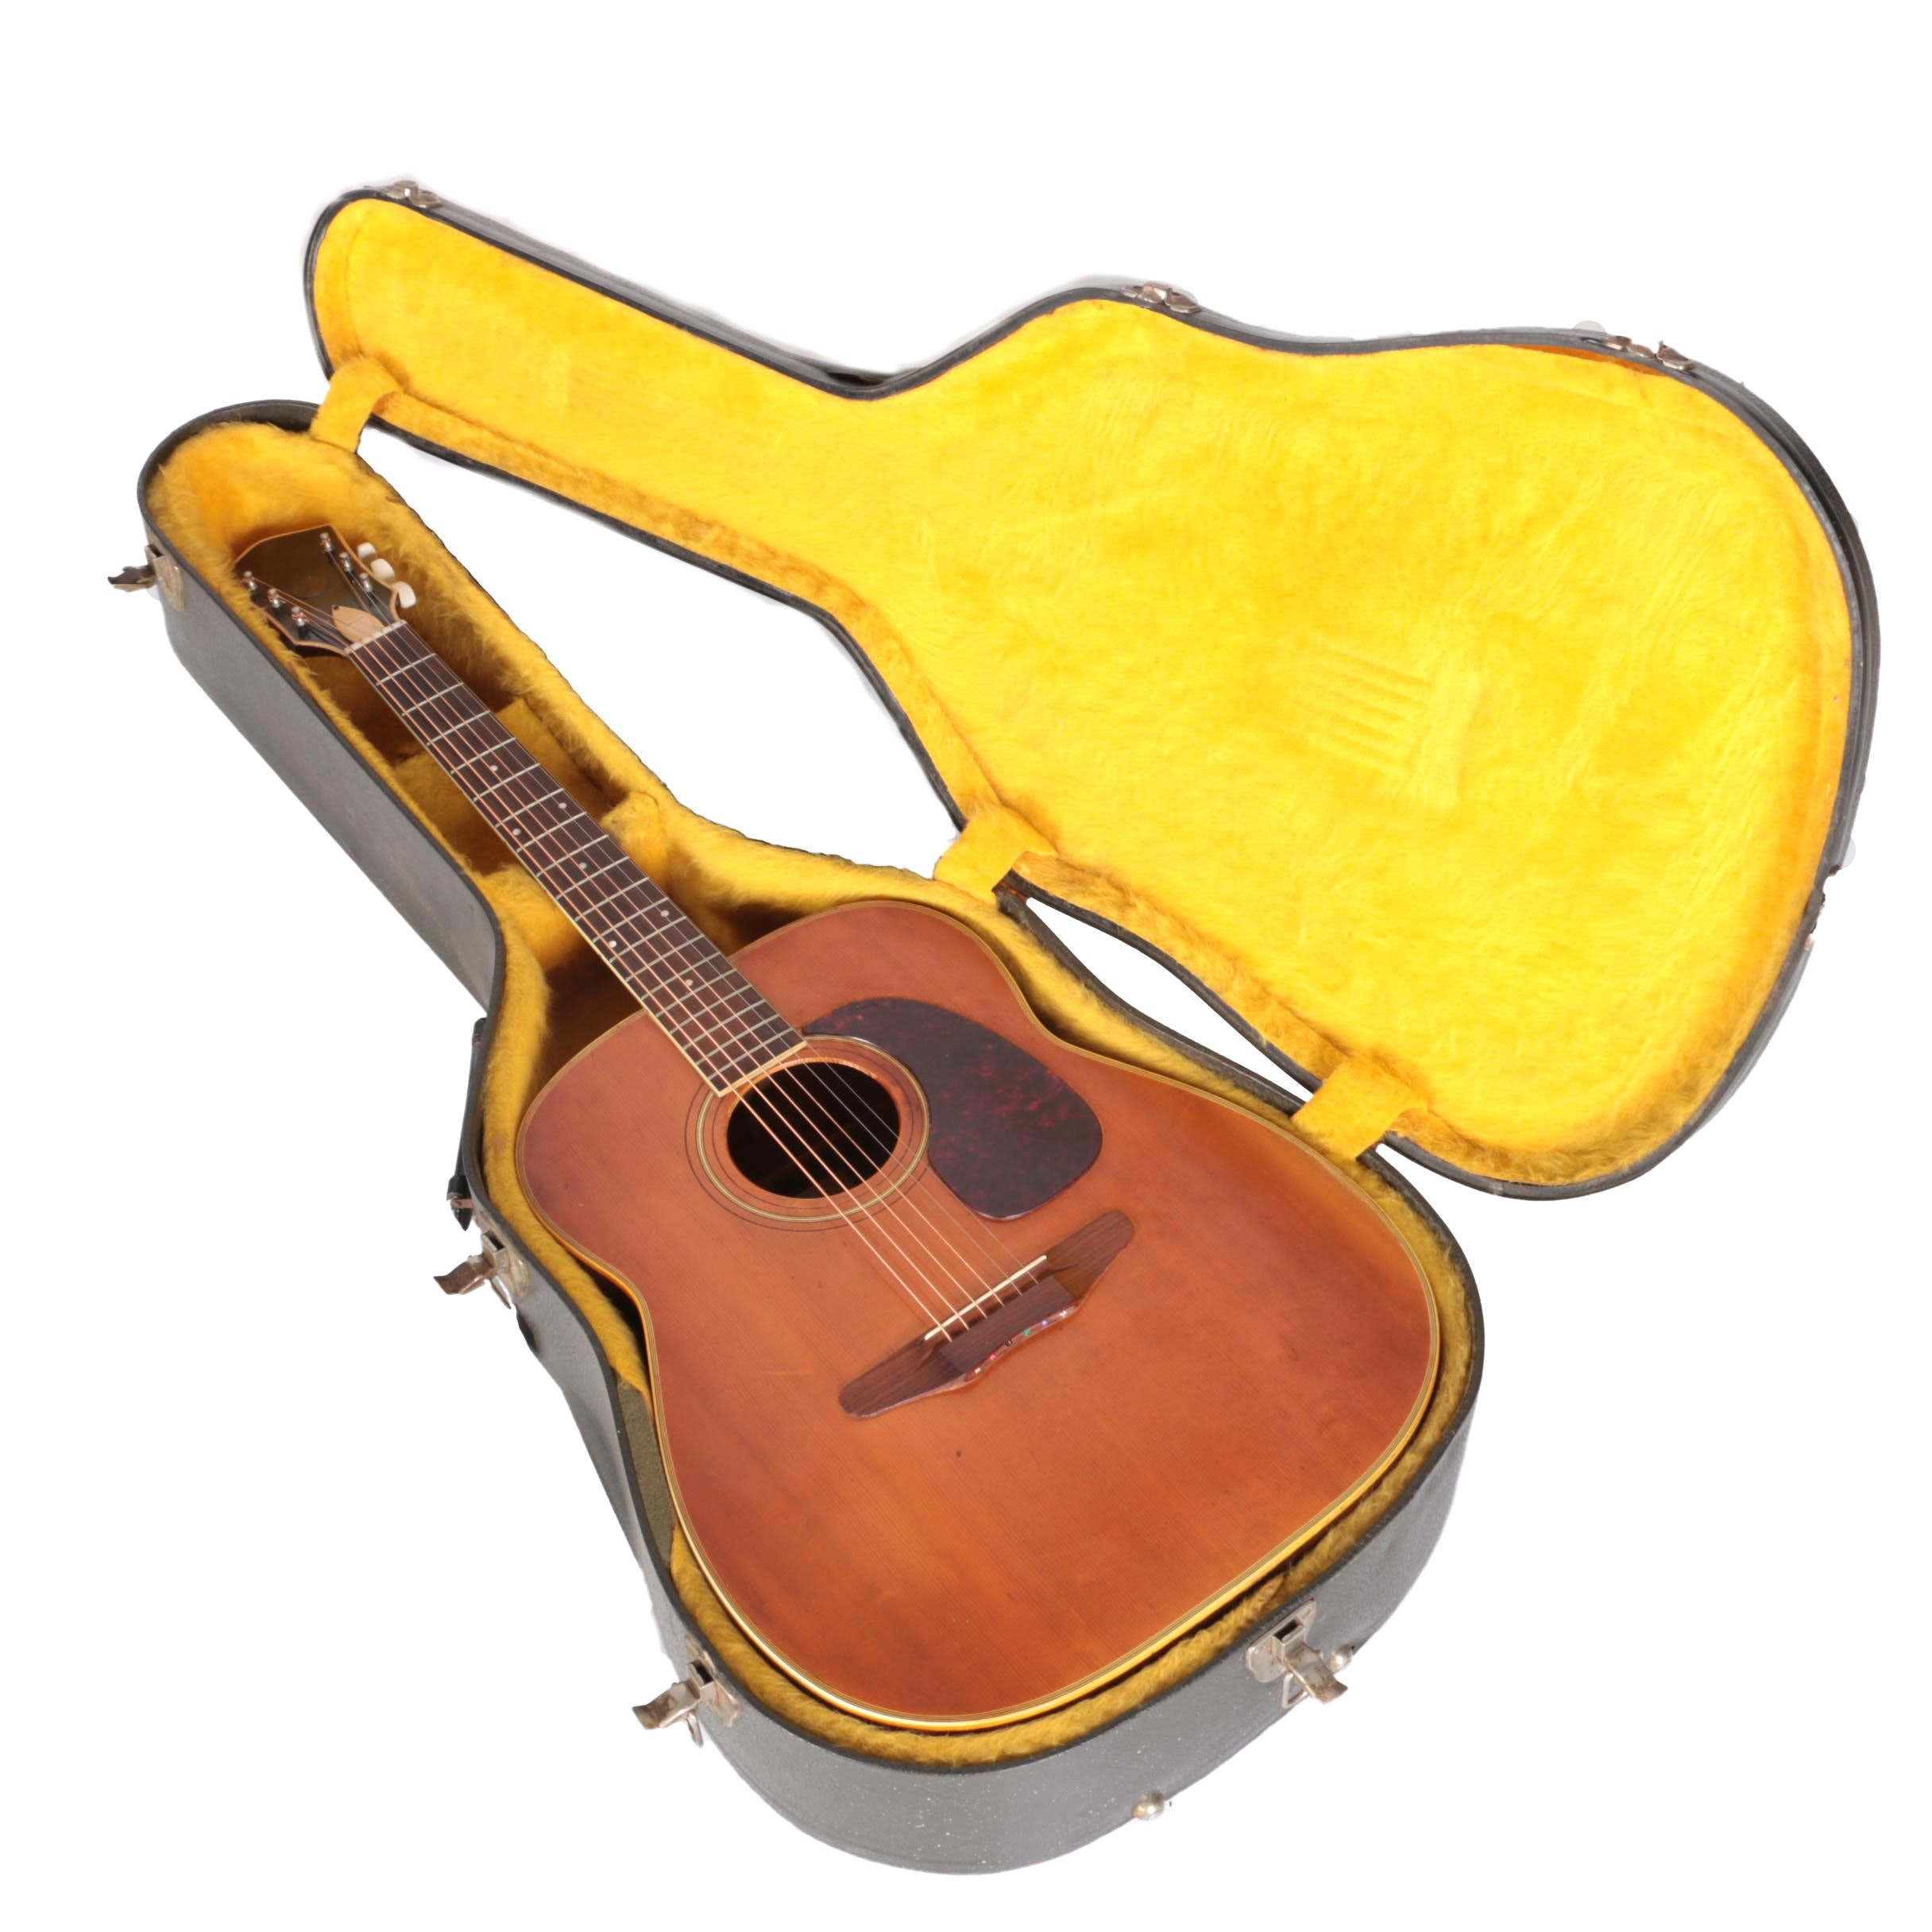 Vintage Harmony Sovereign H-6560 1975 Jumbo Acoustic Guitar with Case